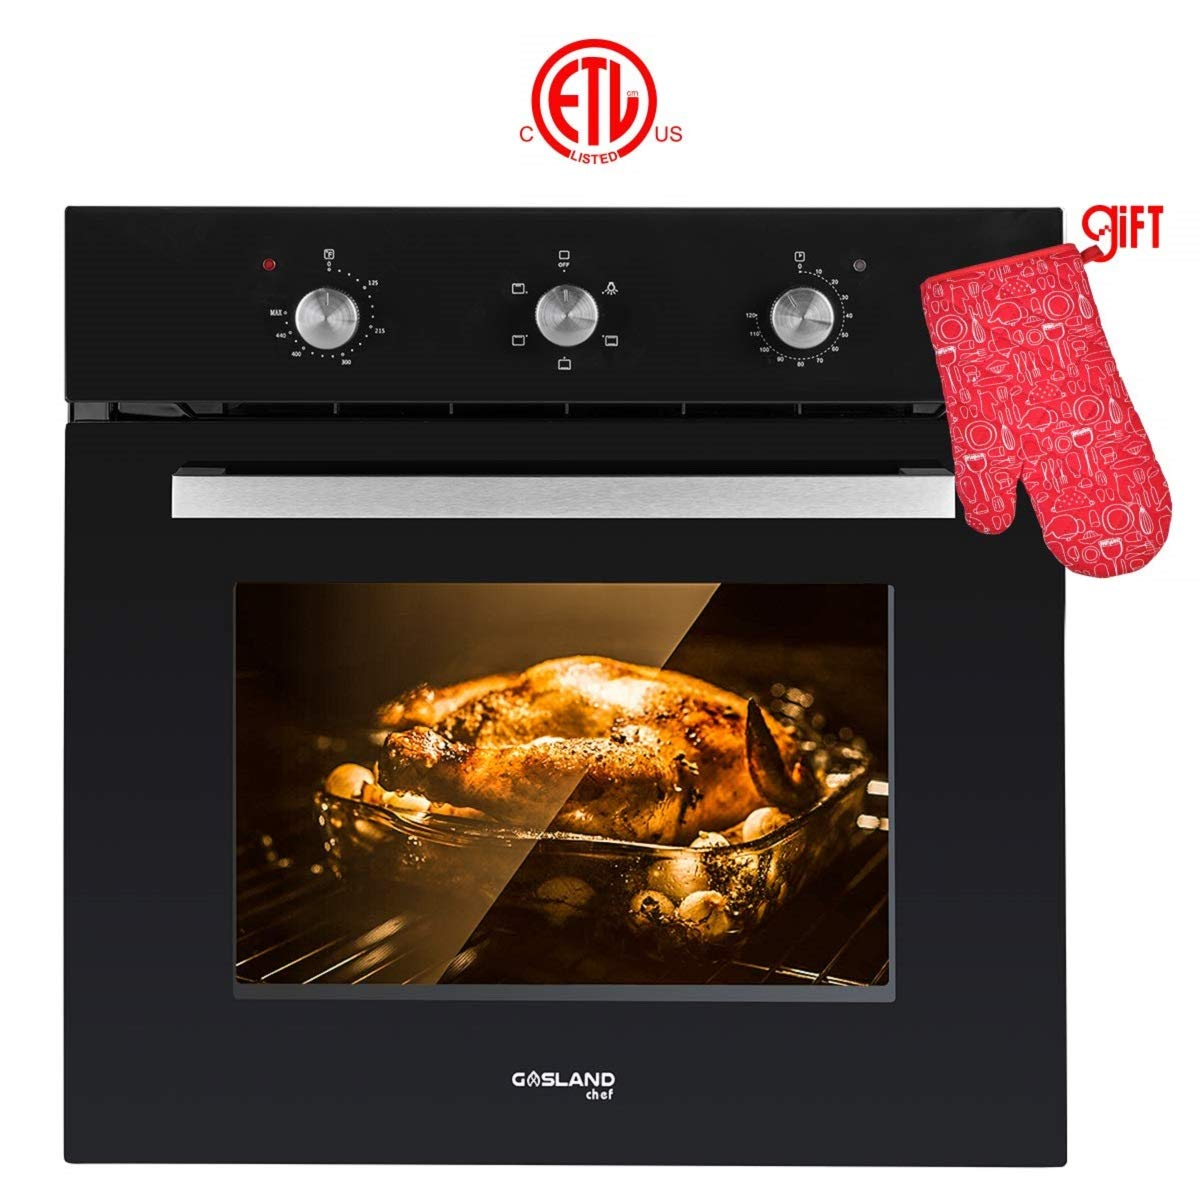 Single Wall Oven, Gasland Chef ES606MB 24'' Built-in Electric Wall Oven, 6 Cooking Function, Black Glass Mechanical Electric Wall Oven with Cooling Down Fan, 3 Layer Glass, ETL Safety Certified by GASLAND